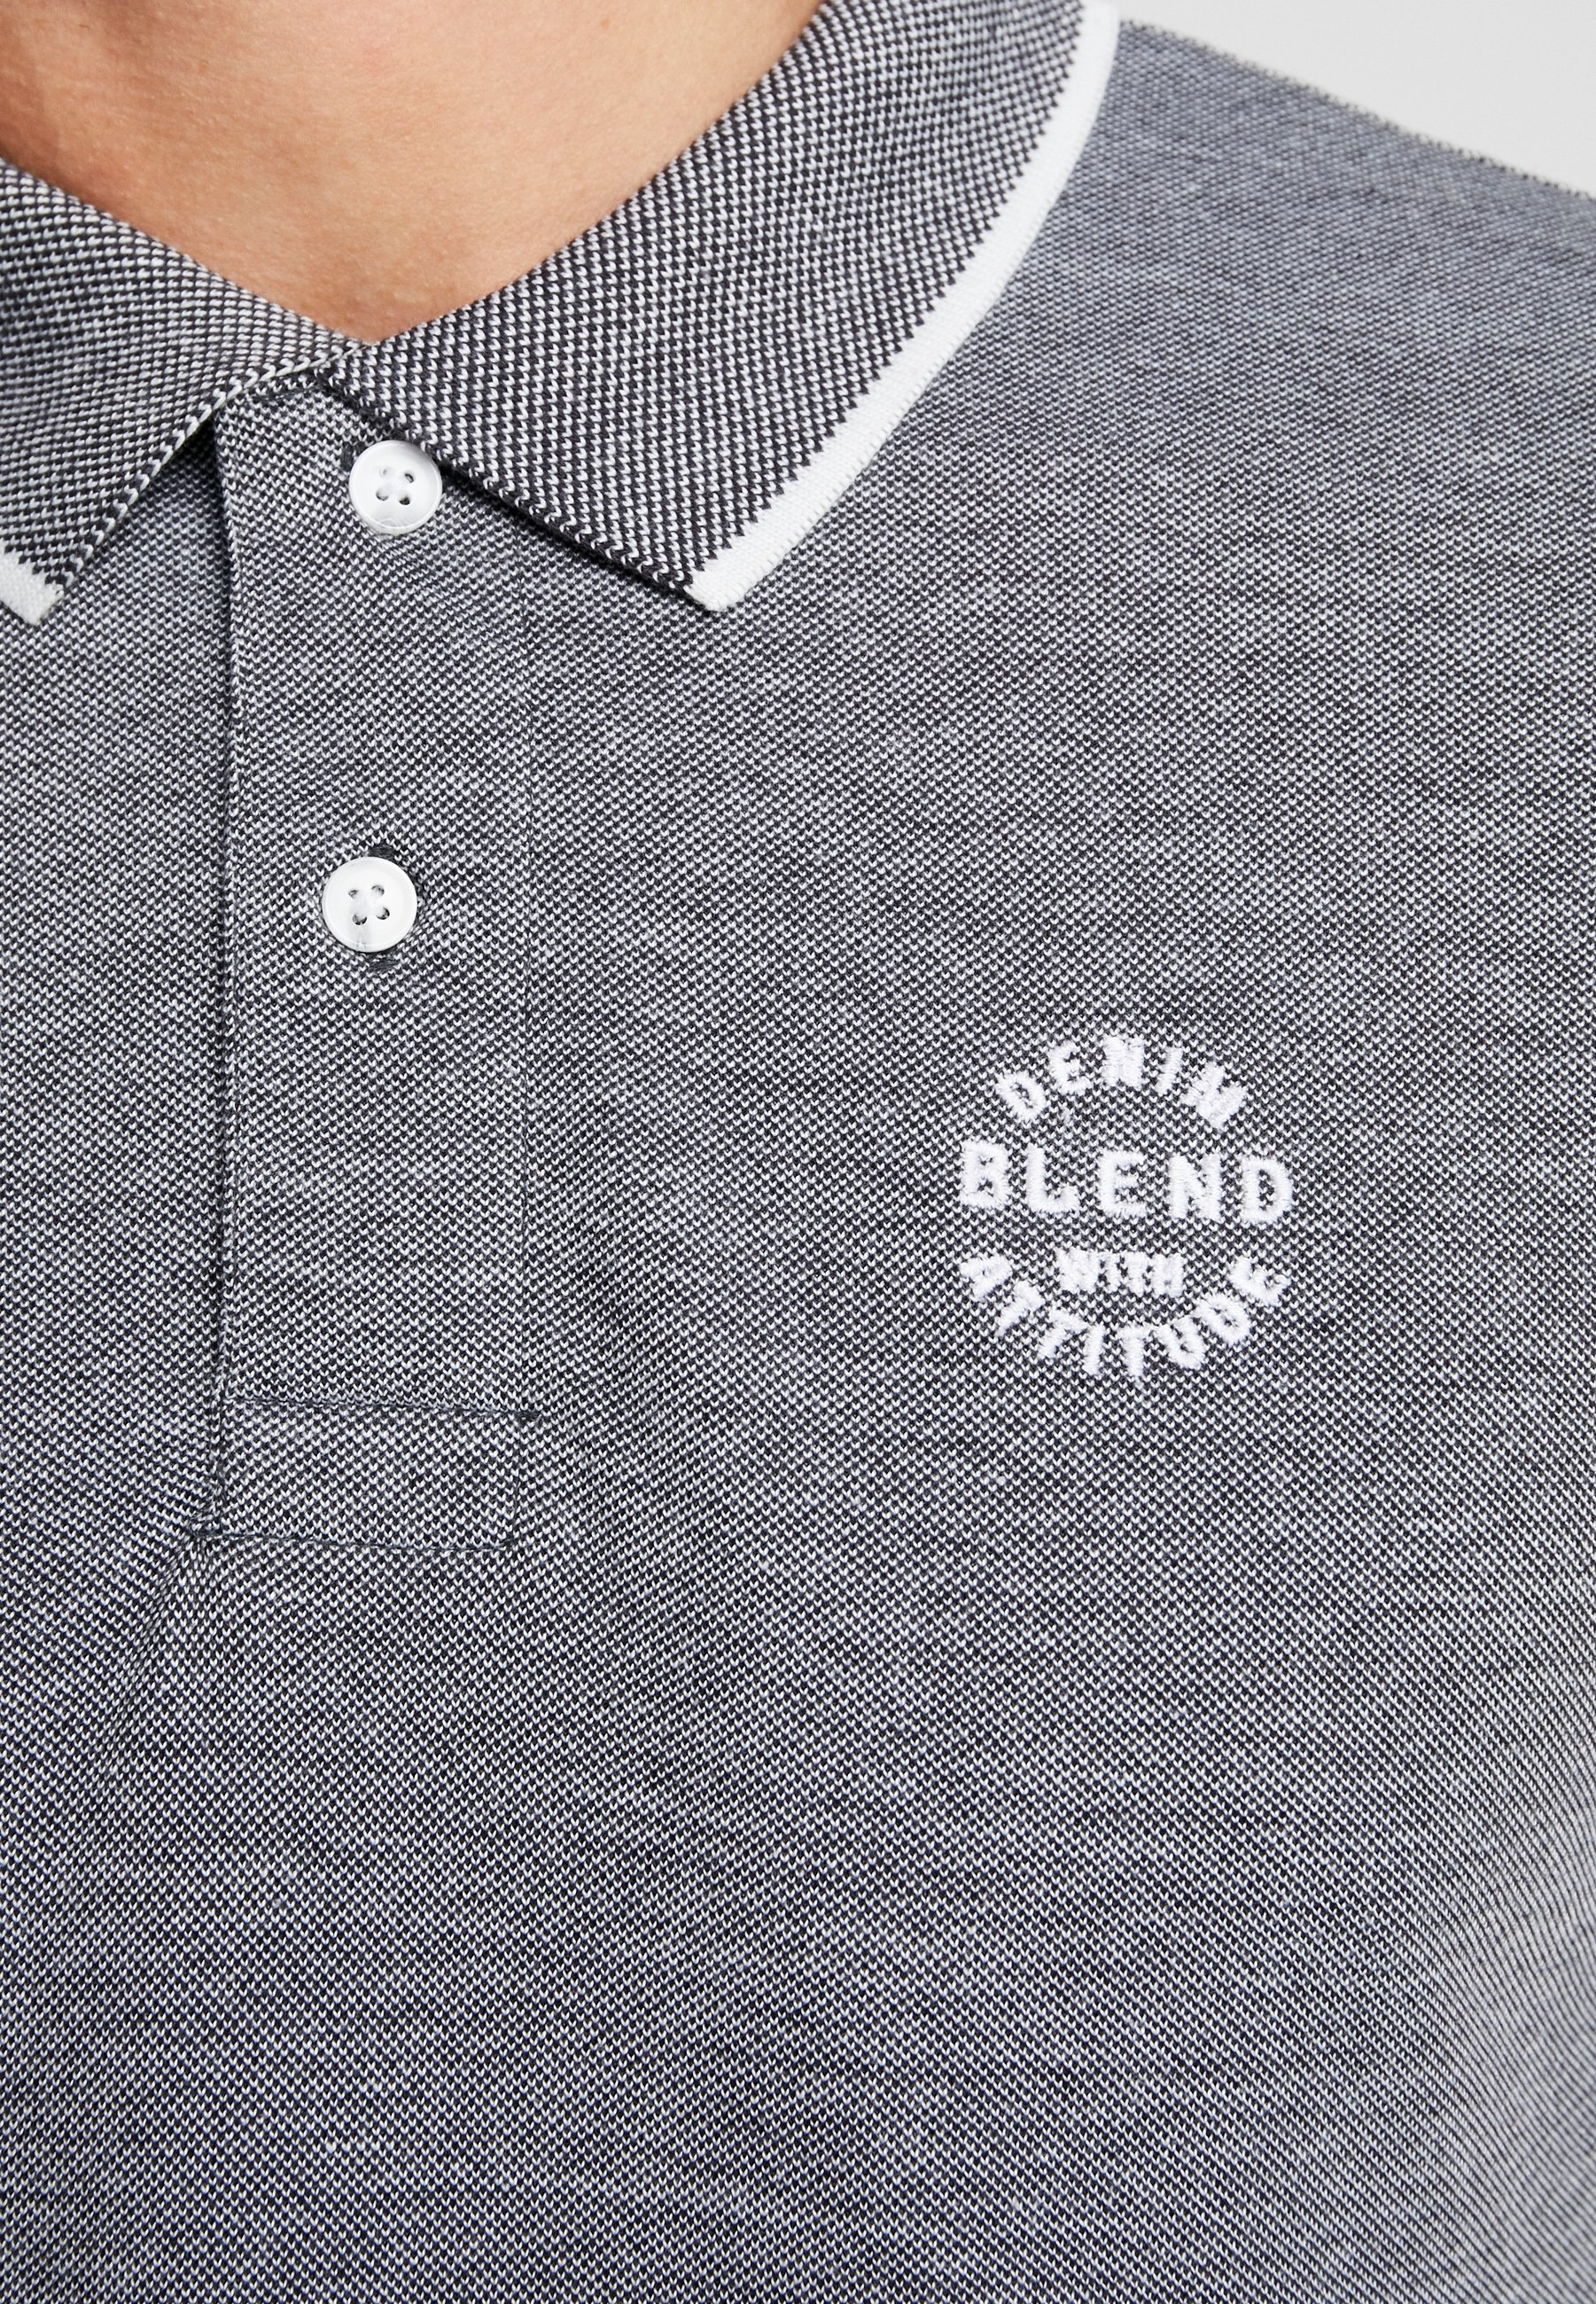 Blend Polo shirt - black pTzXb